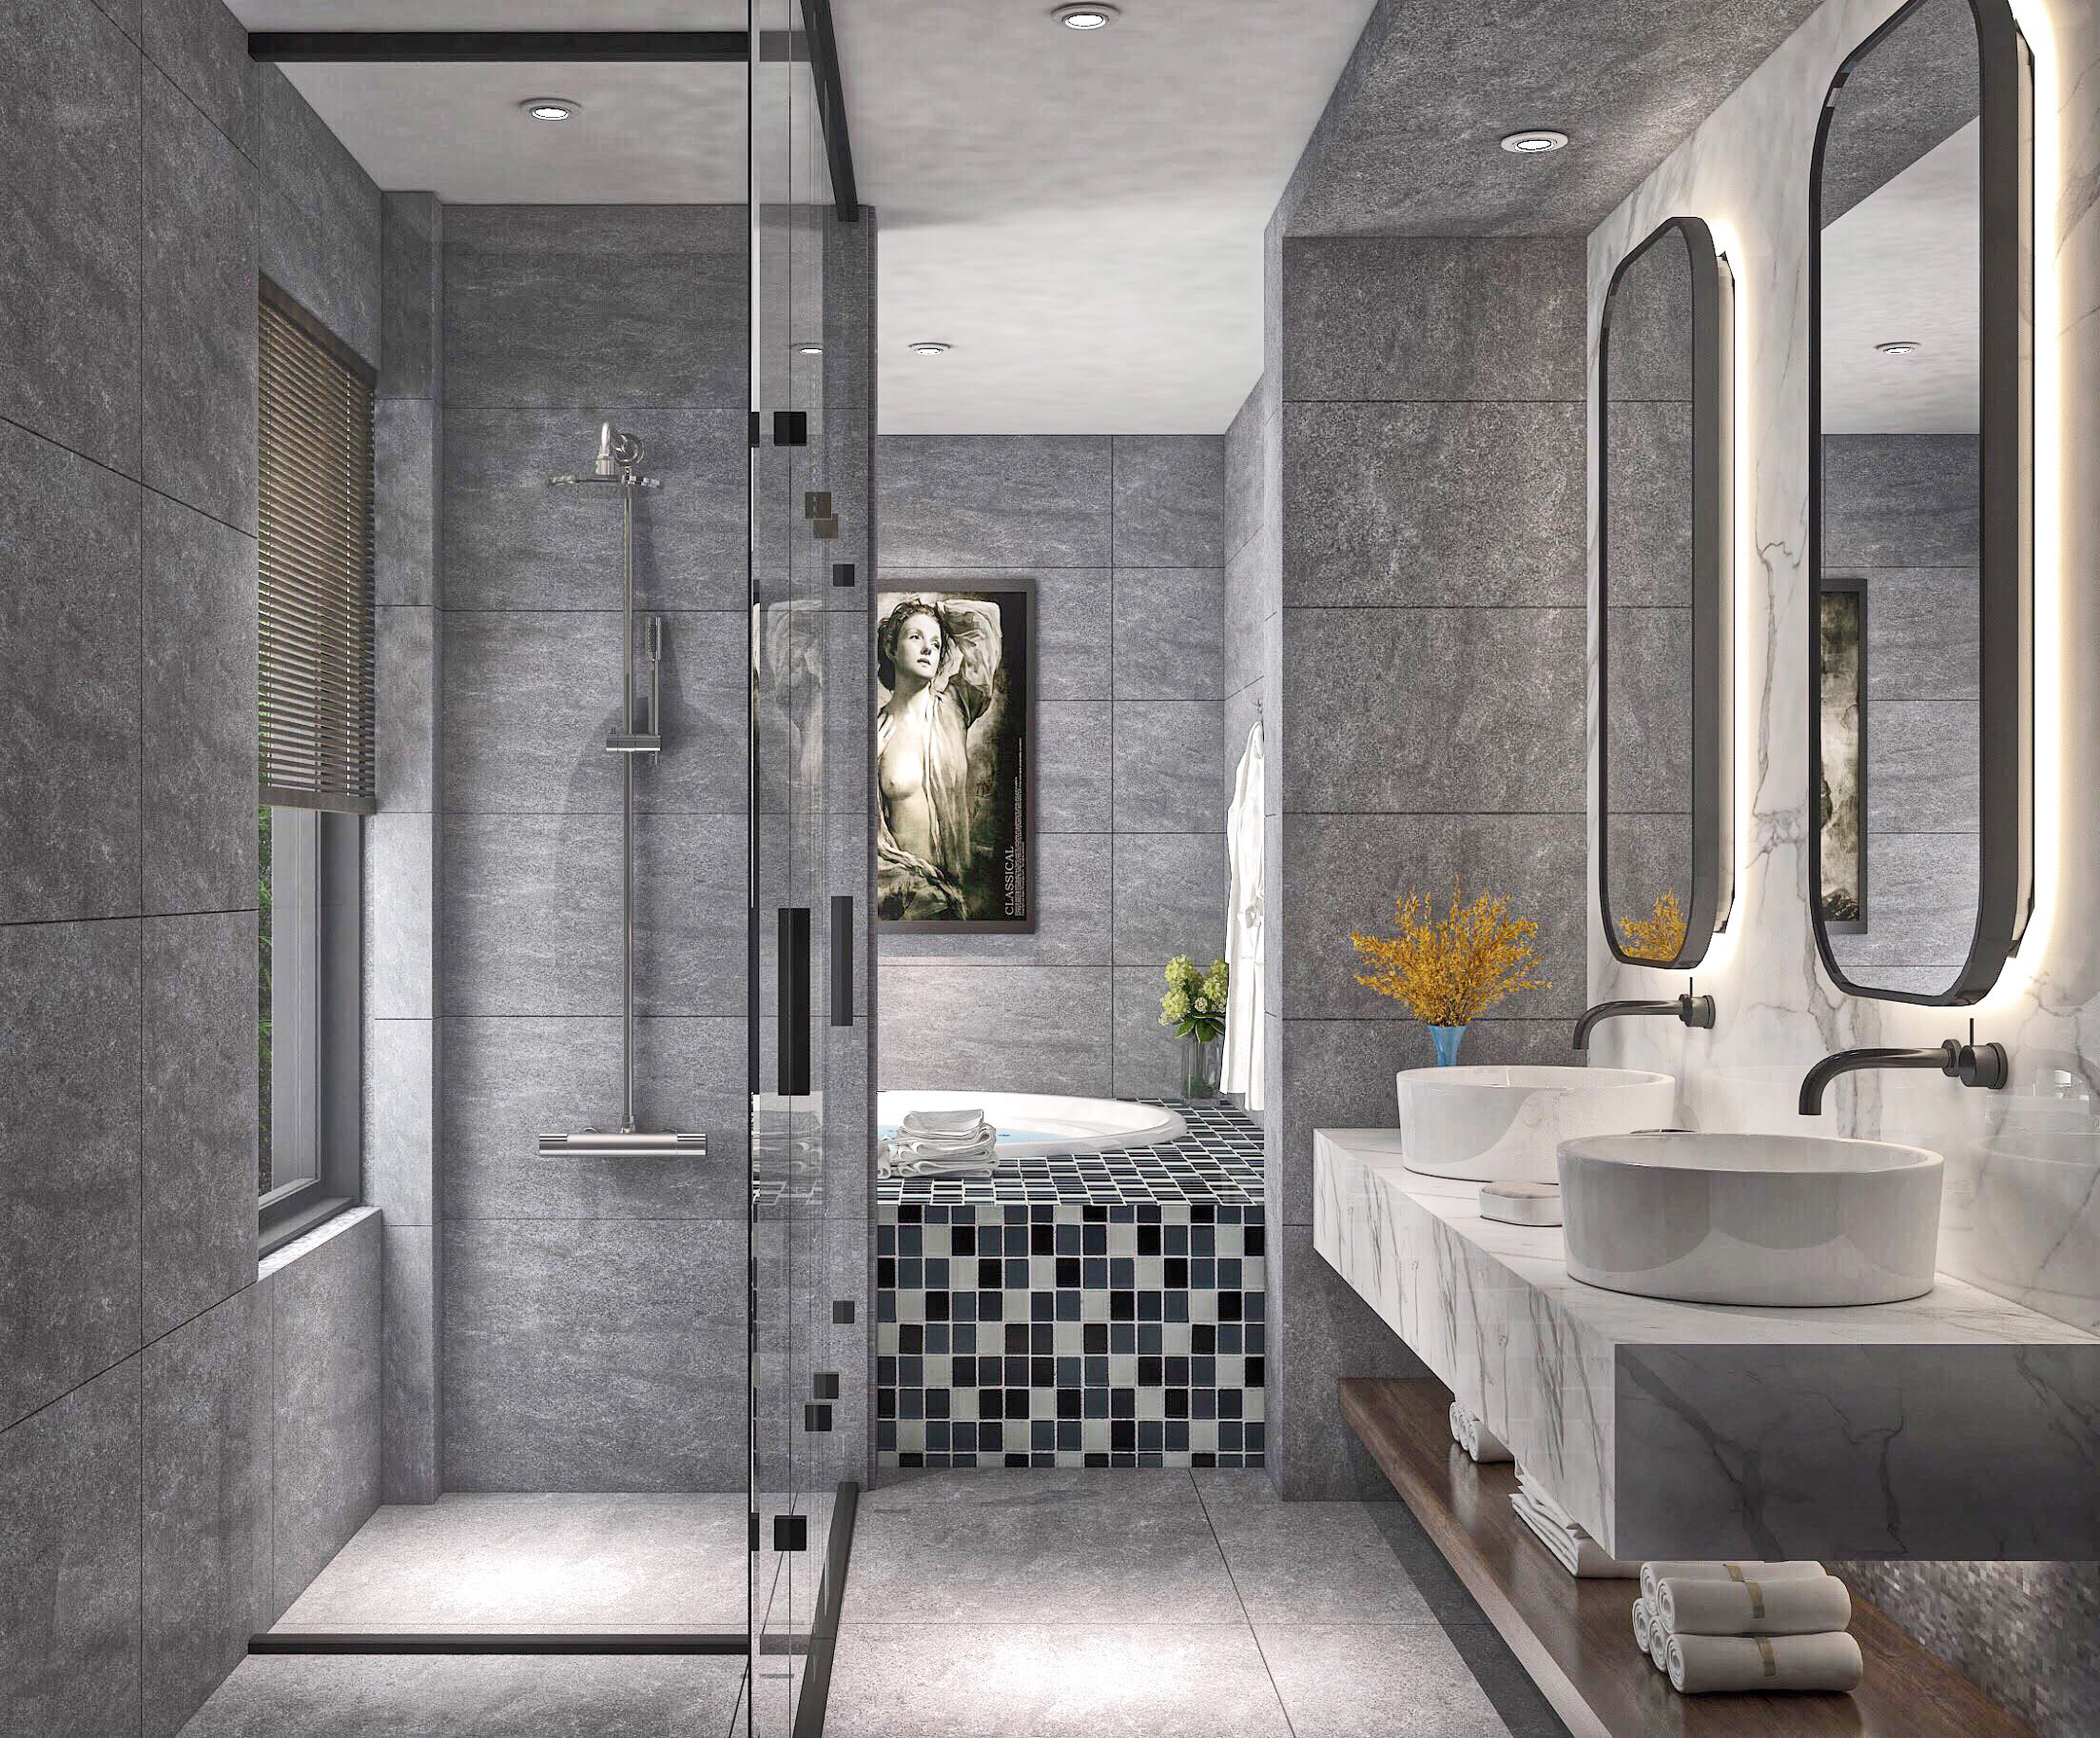 Bathroom rendering 3